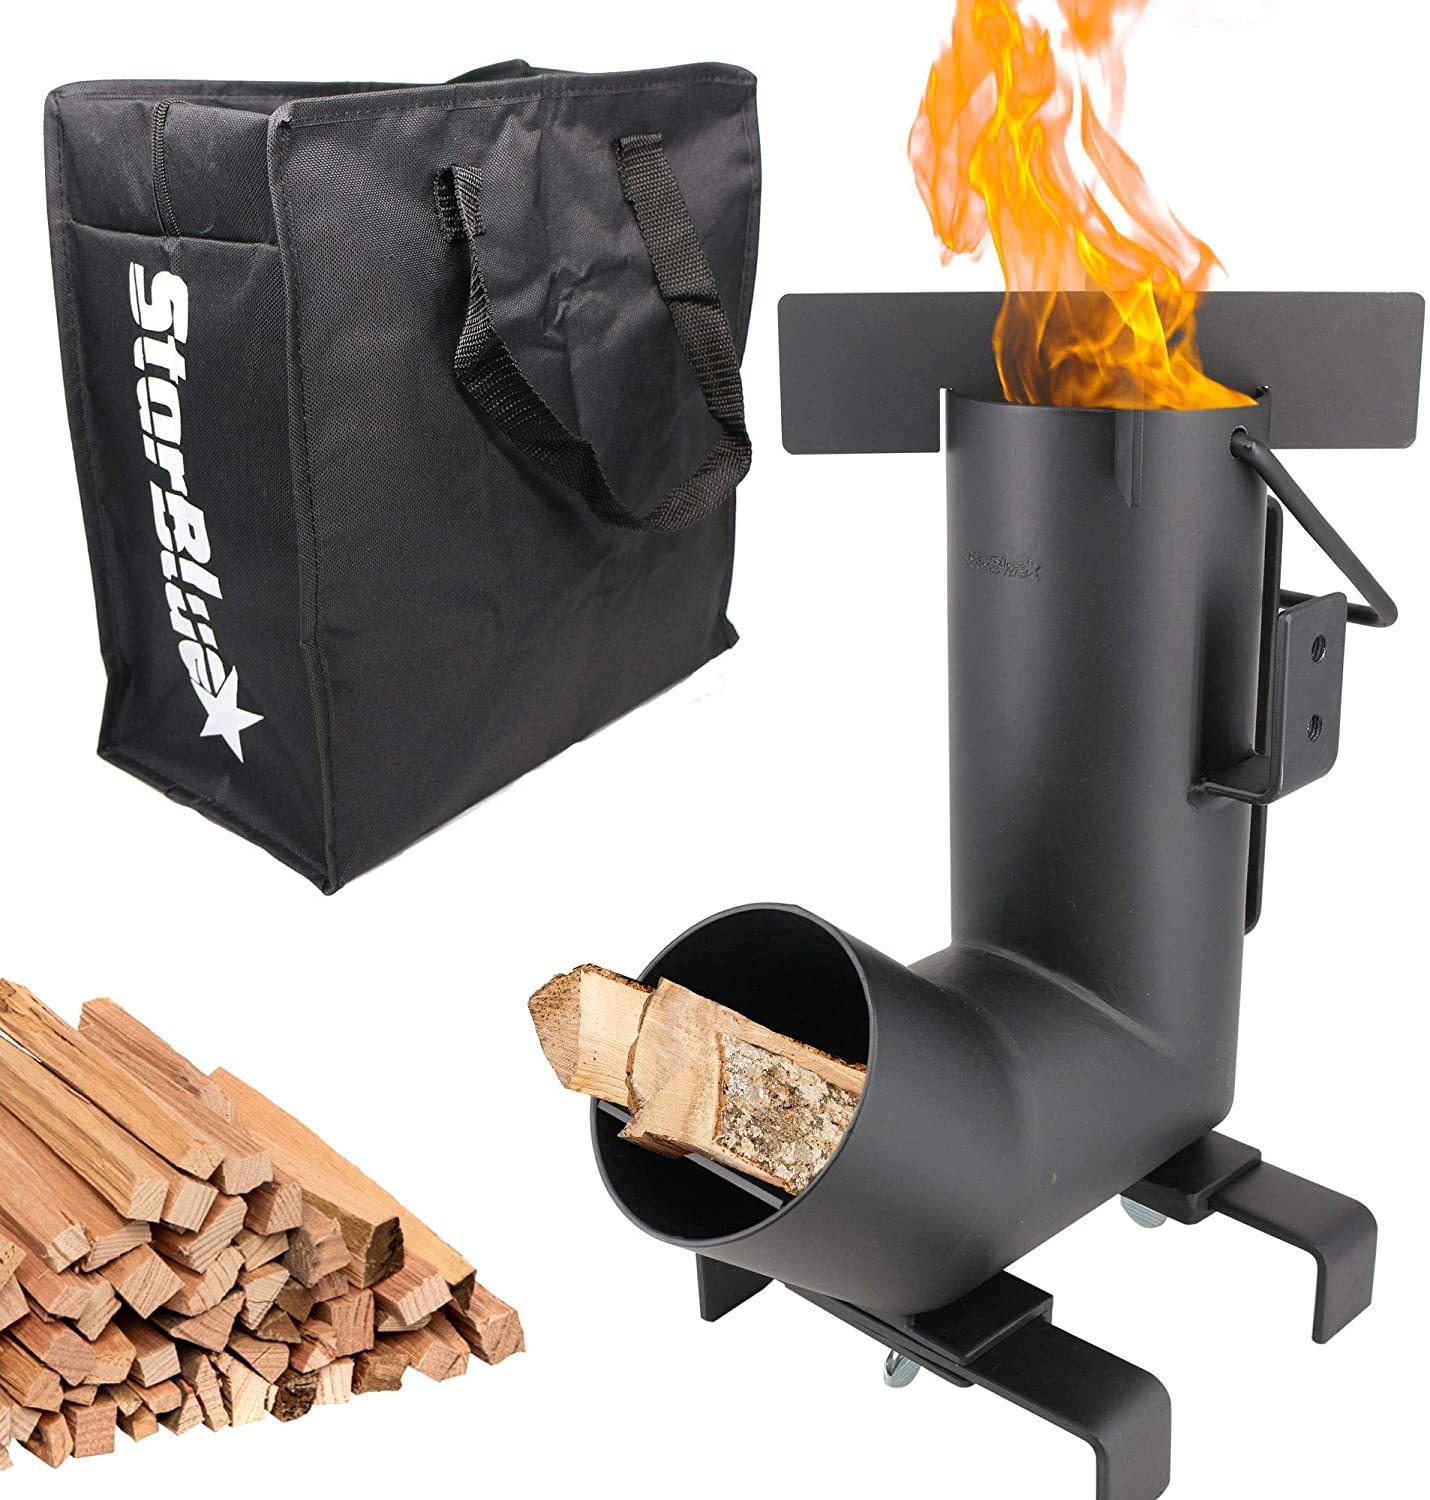 Camping Rocket Stove by StarBlue with FREE Carrying Bag